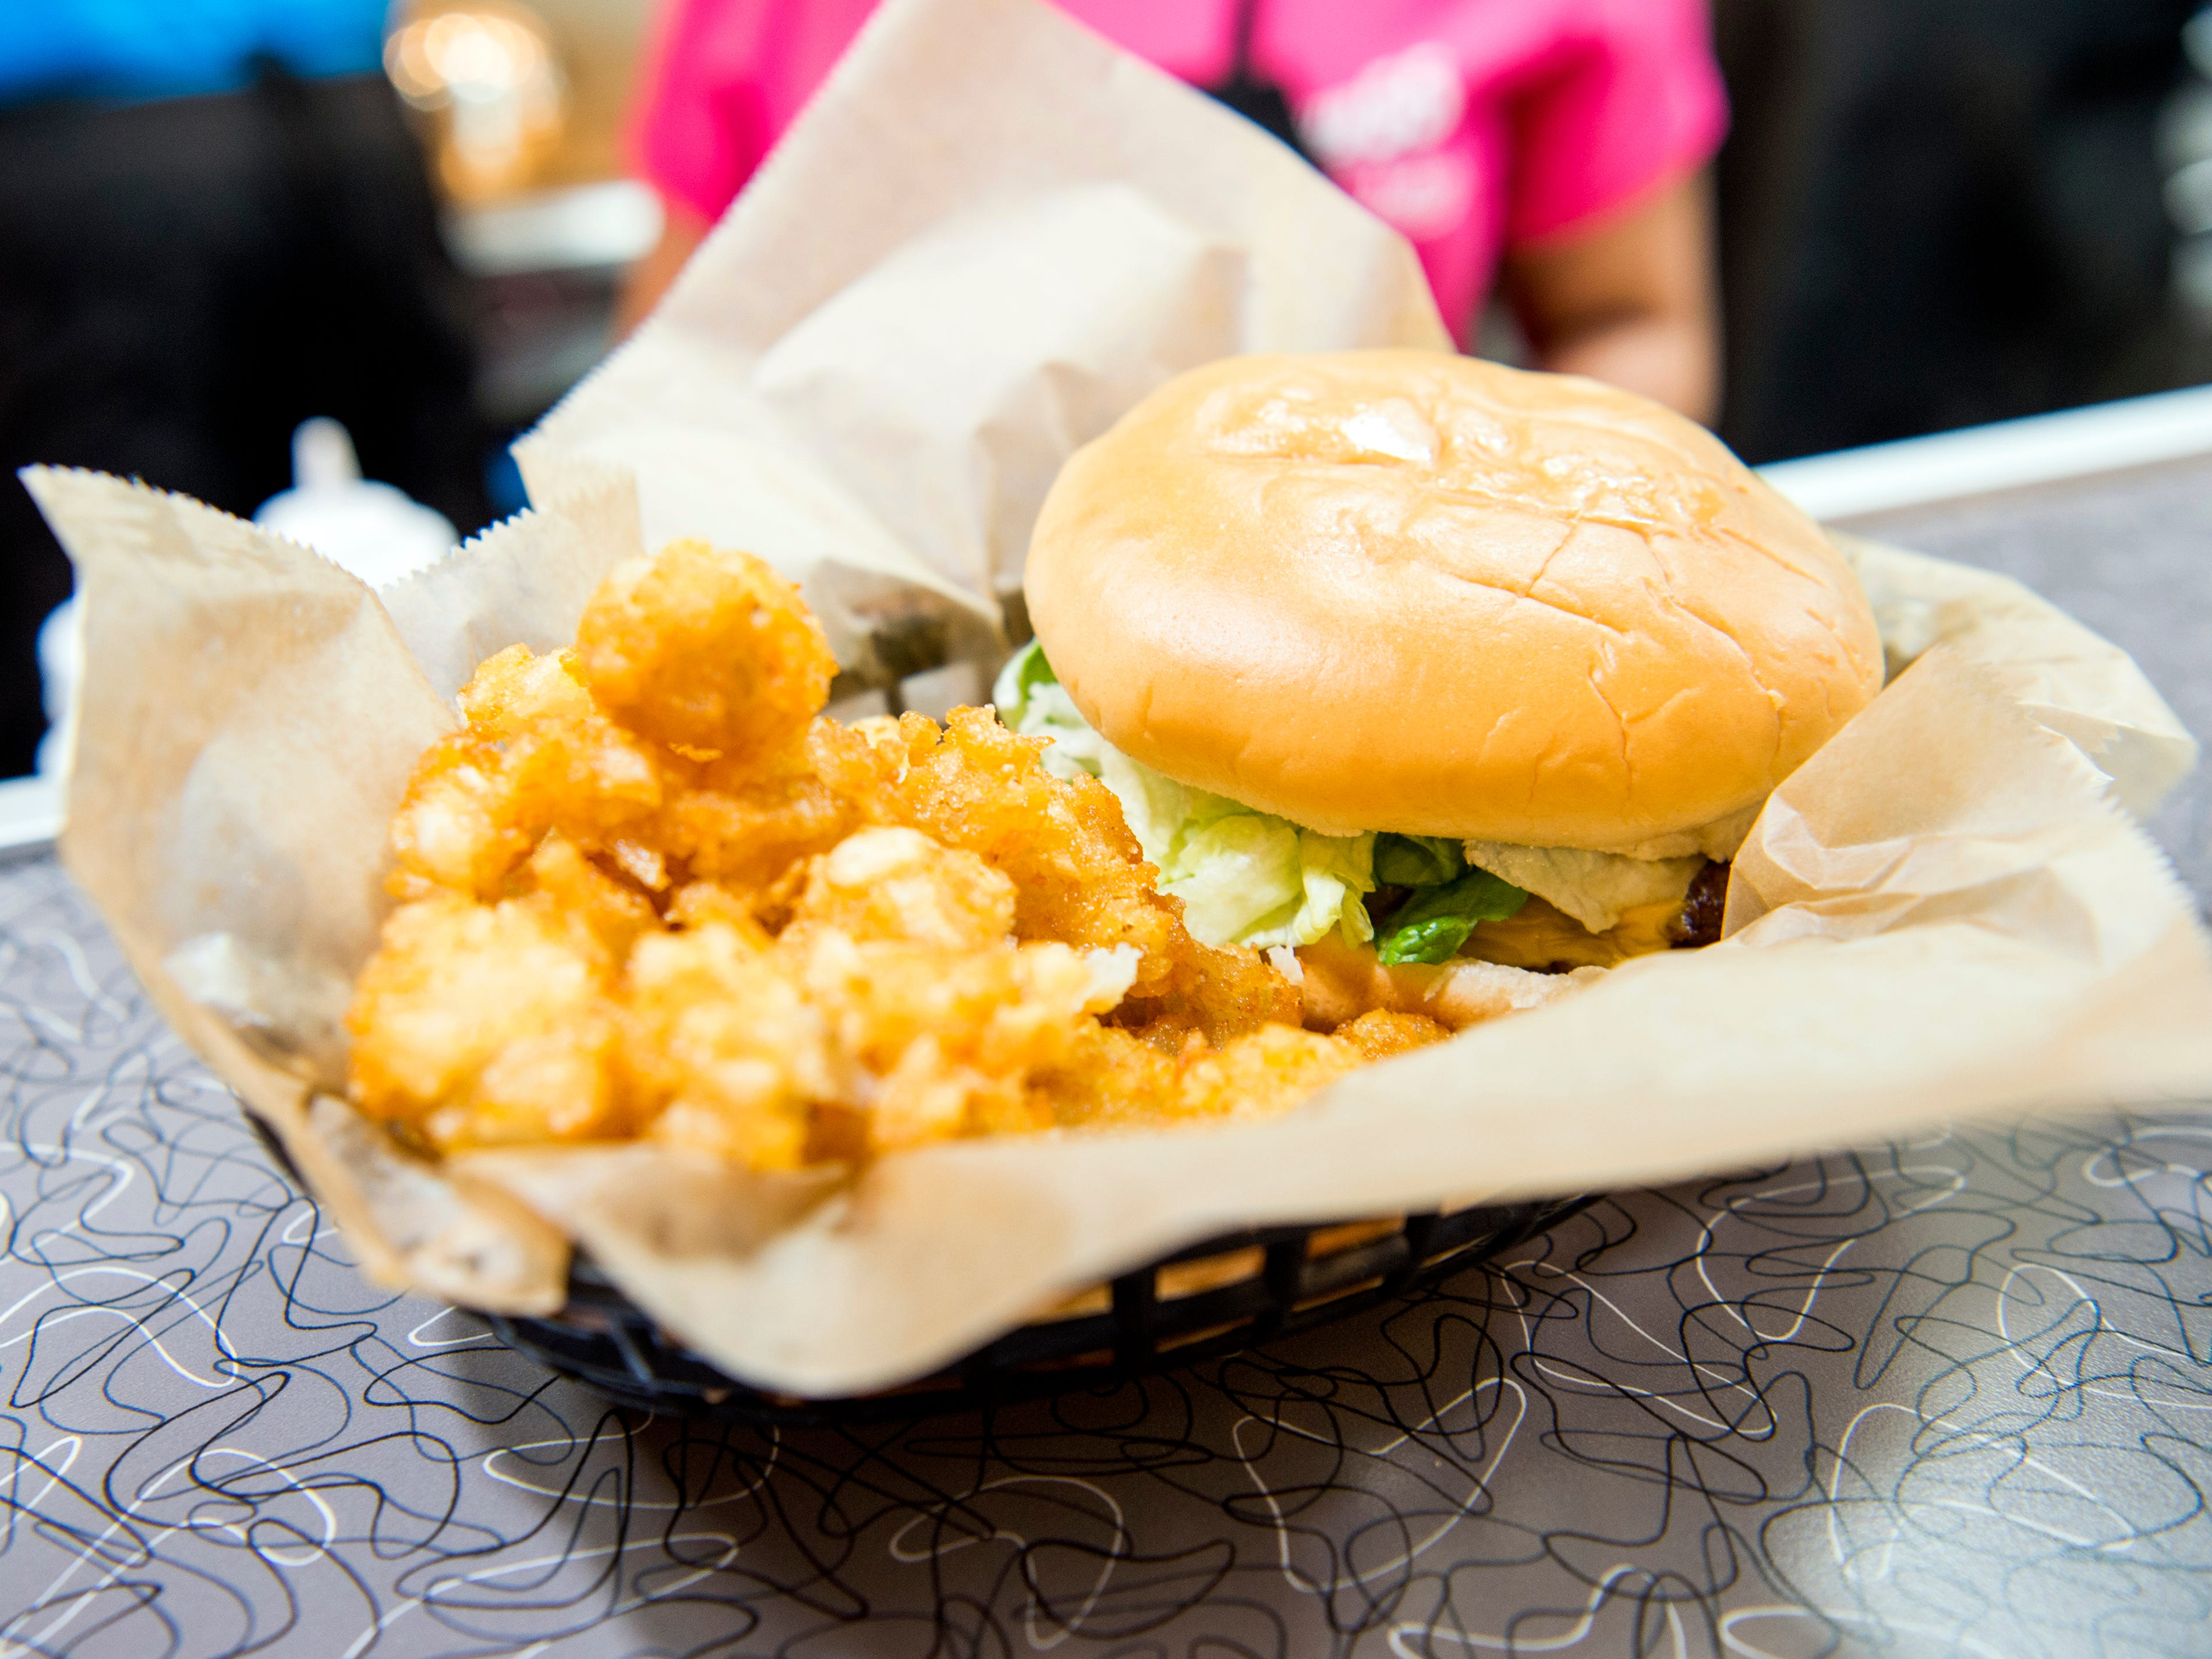 A cheeseburger and tater tots meal at the new Hwy. 55 Burgers, Shakes & Fries at West Town Mall in Knoxville on Monday, January 28, 2019.